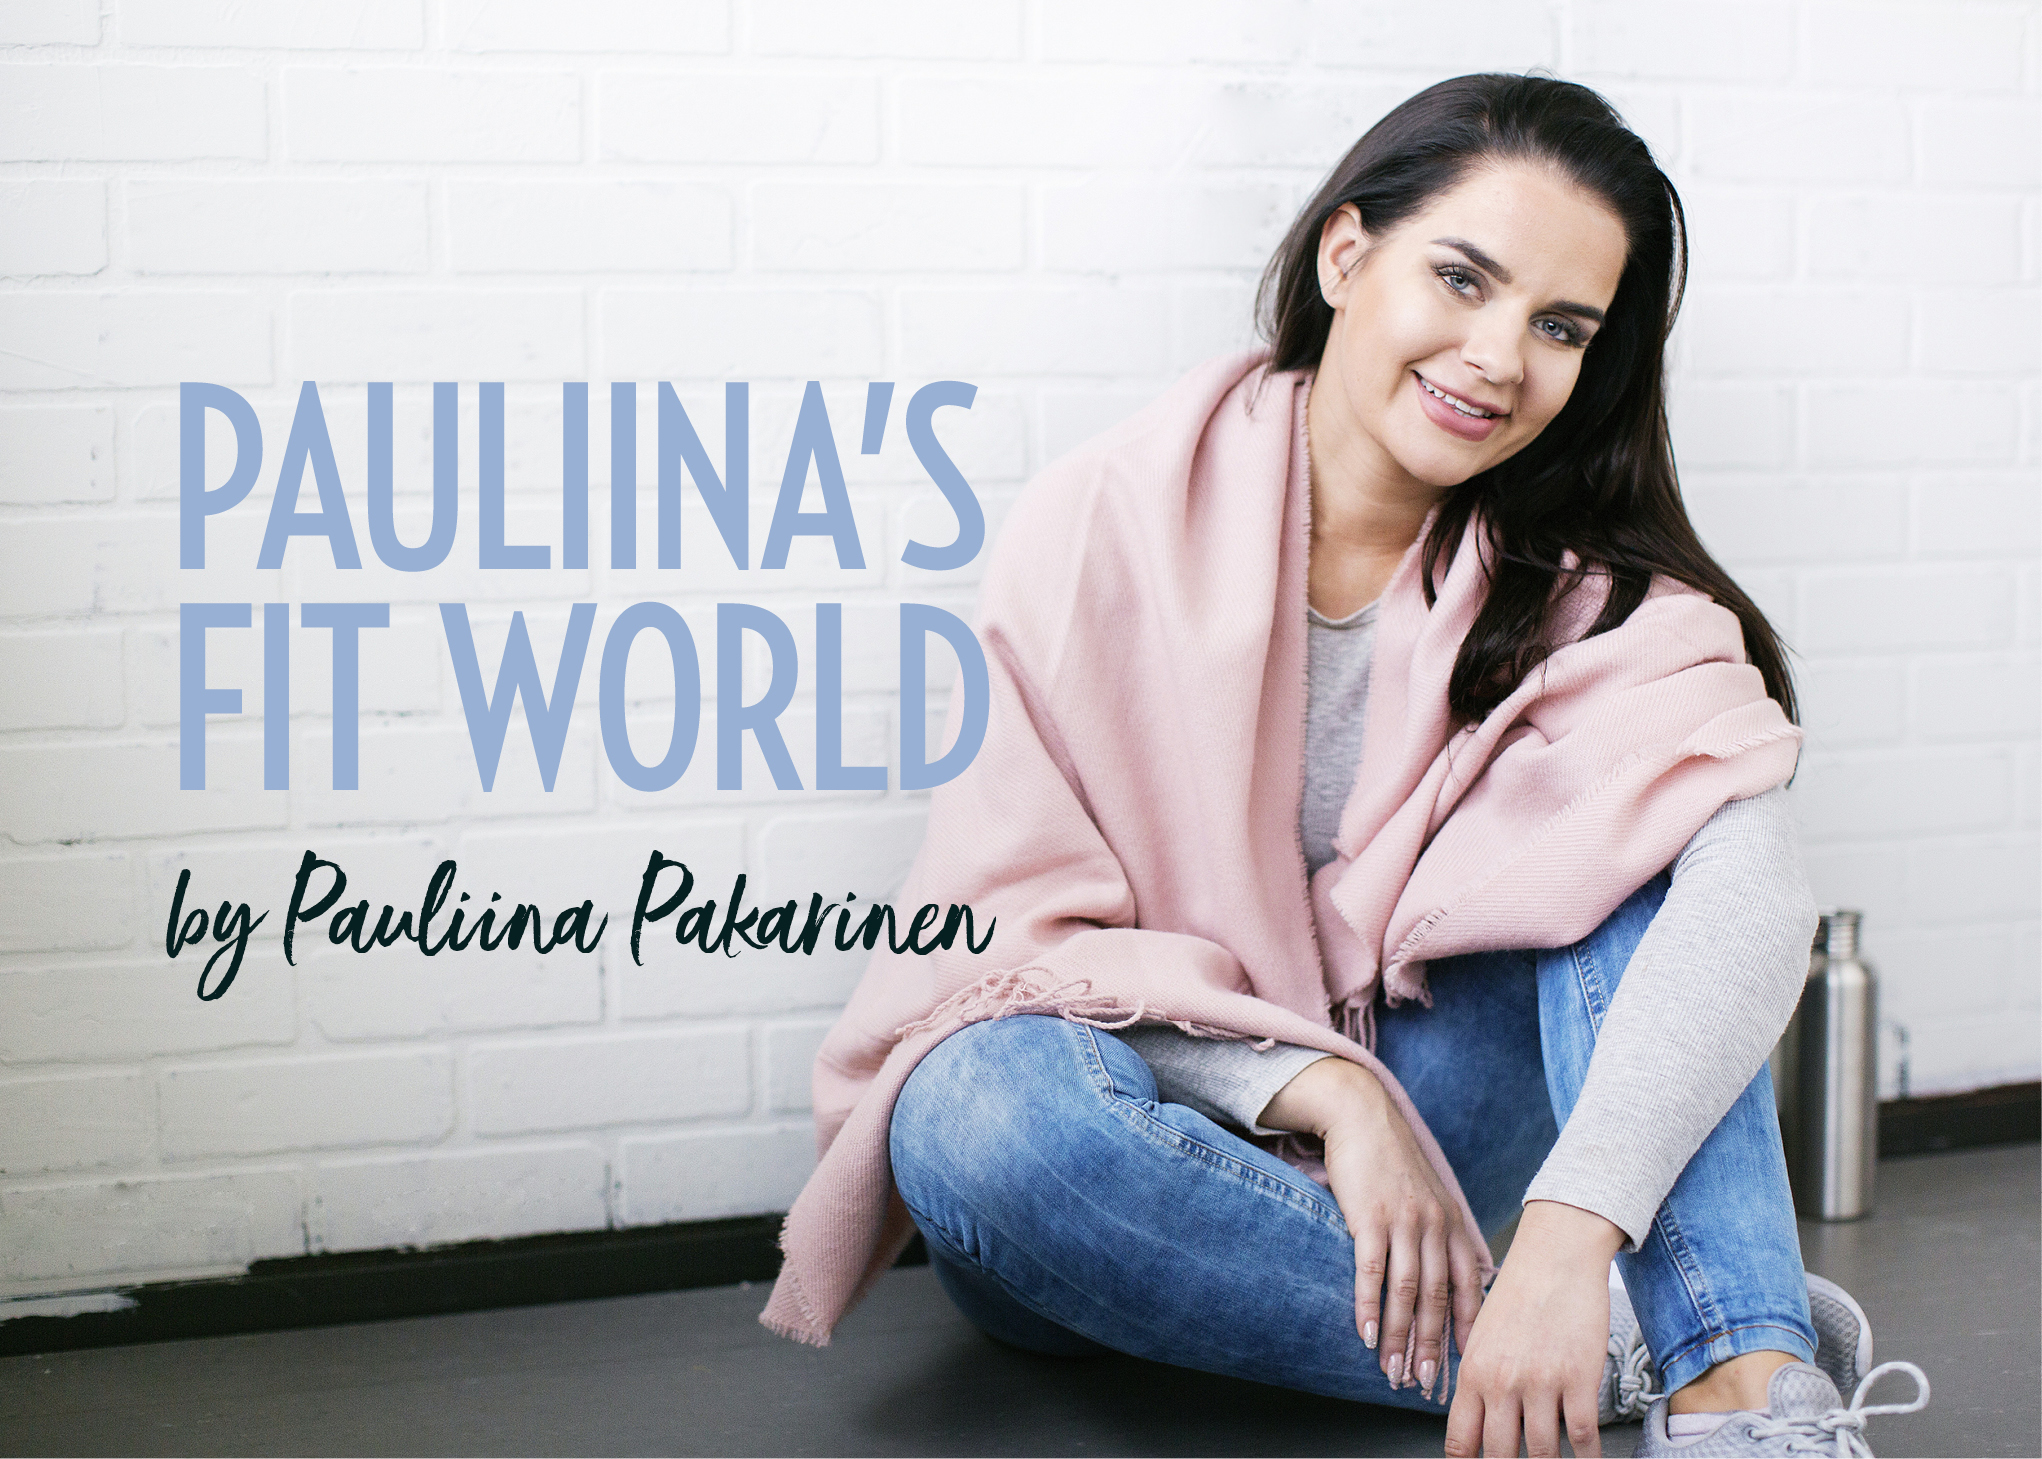 Pauliina's fit world